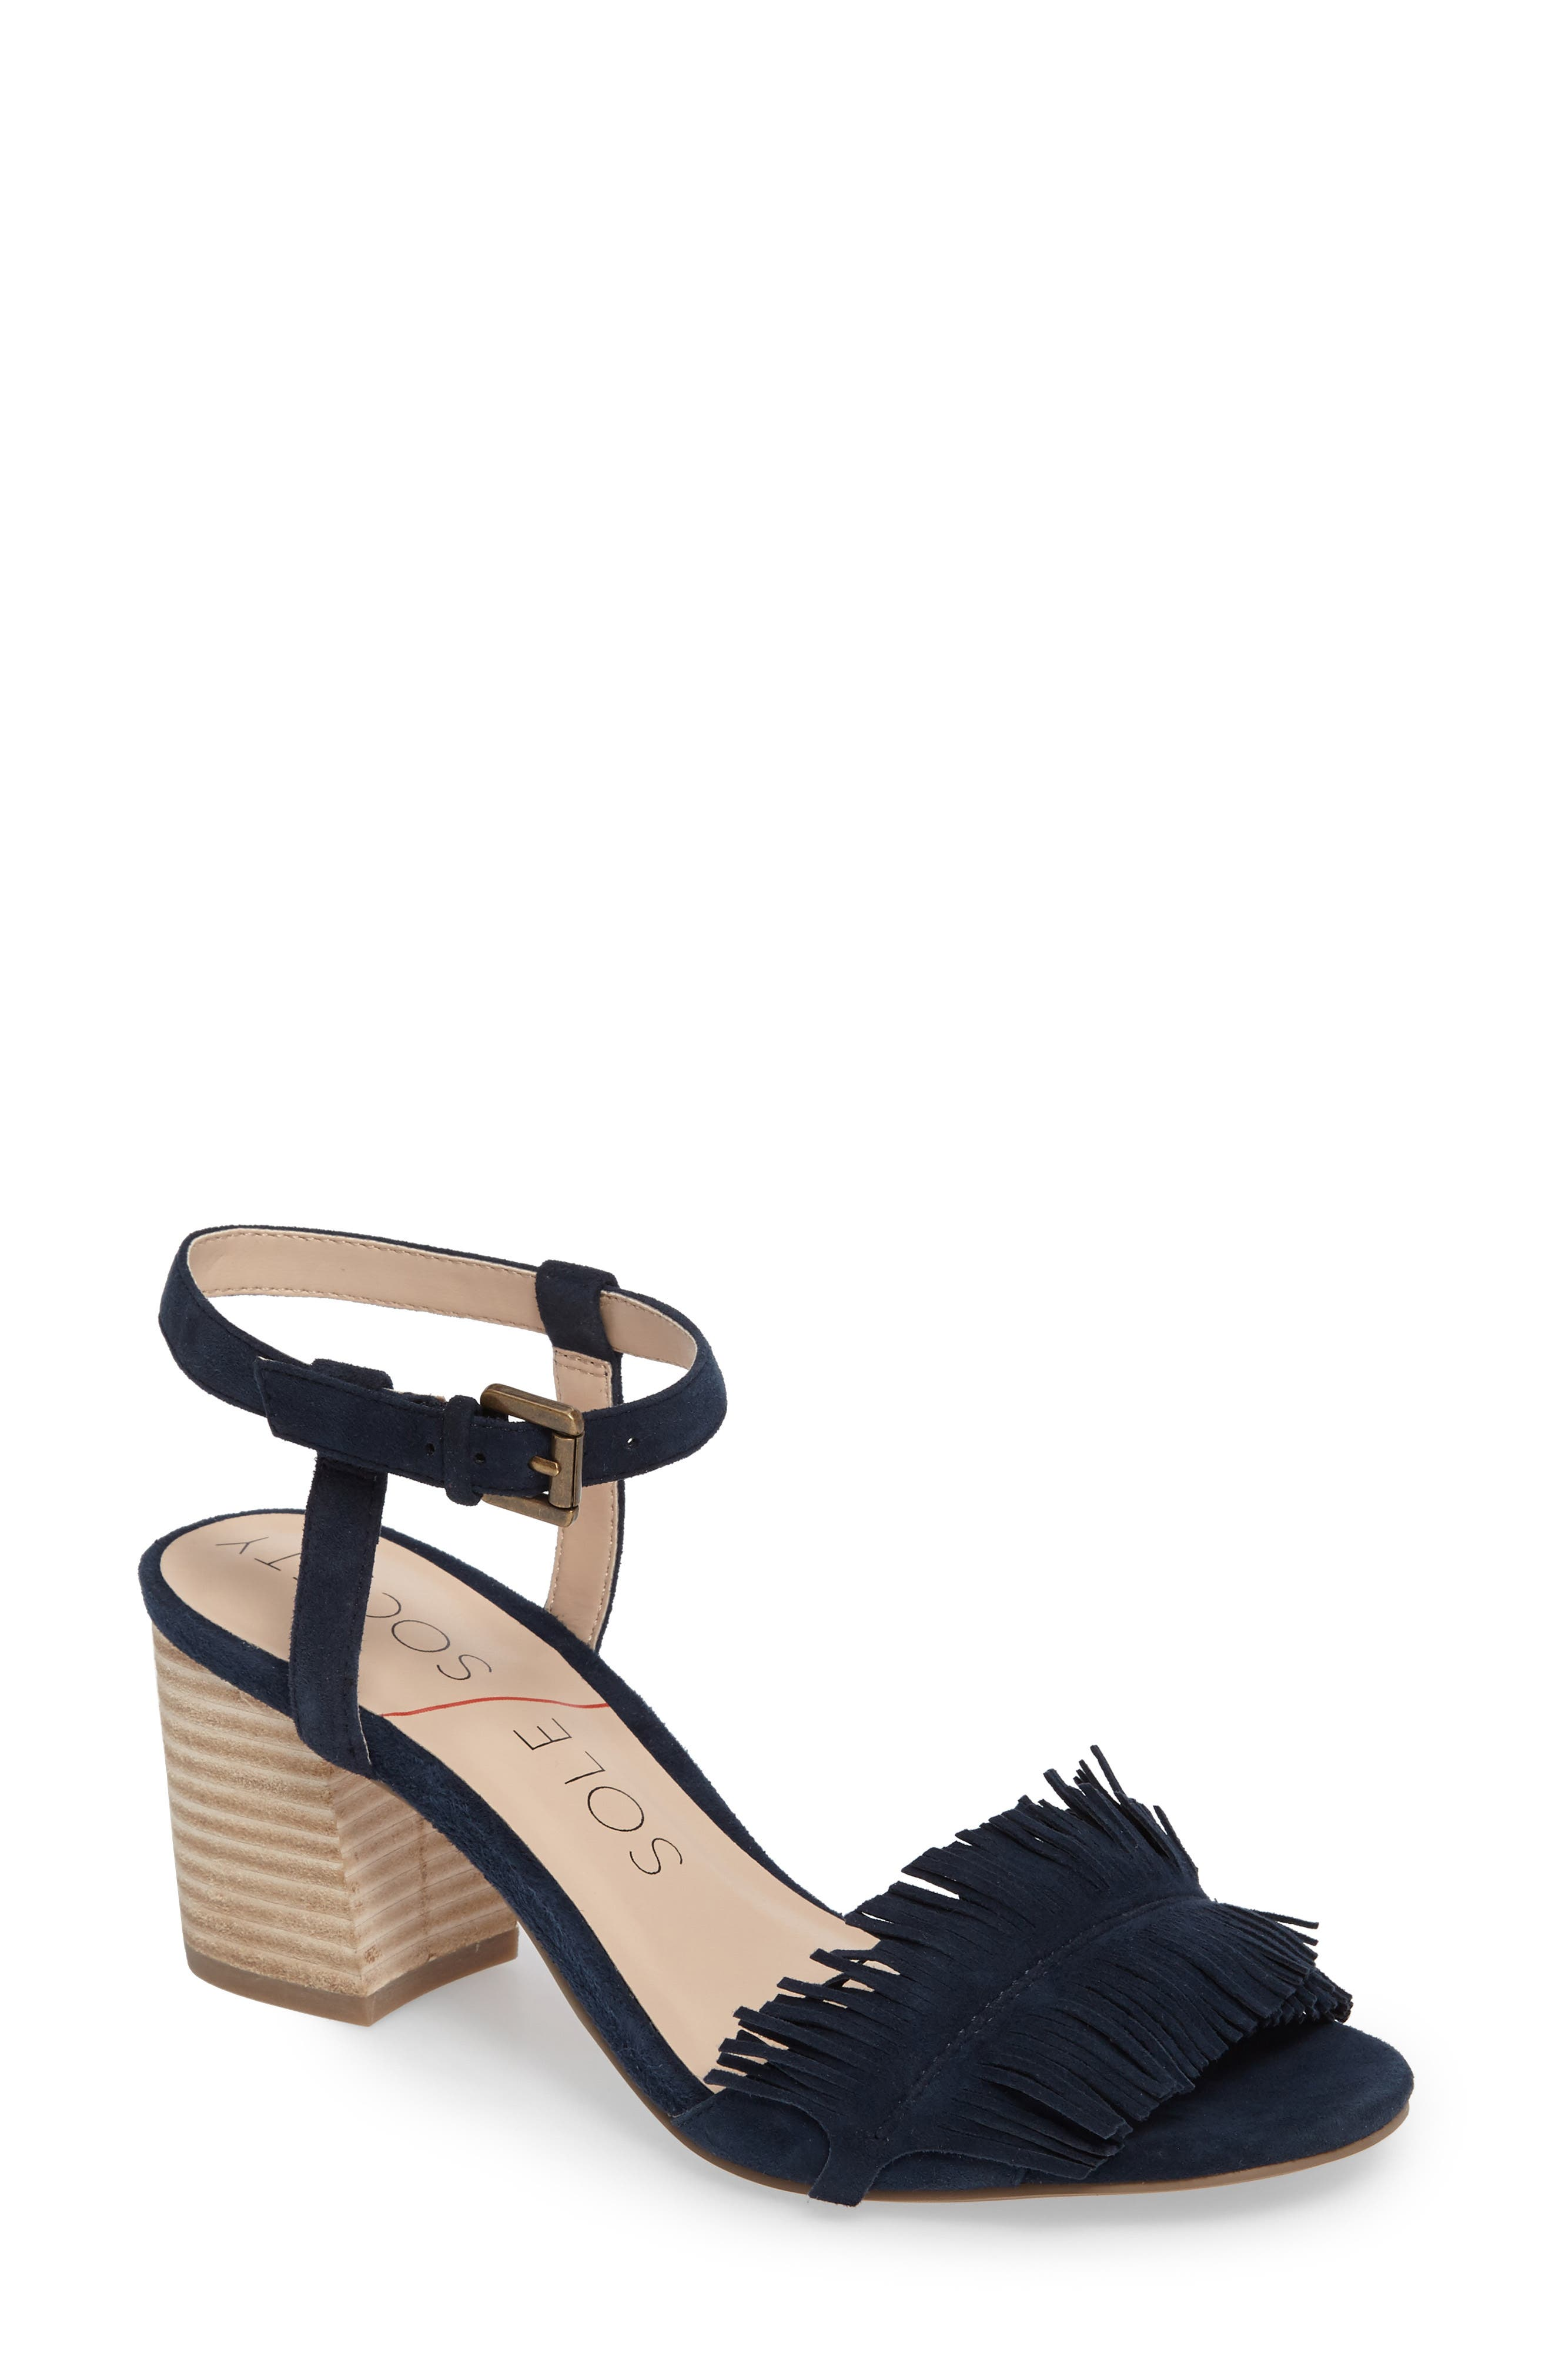 Sepia Fringe Sandal,                             Main thumbnail 1, color,                             Ink Navy Suede